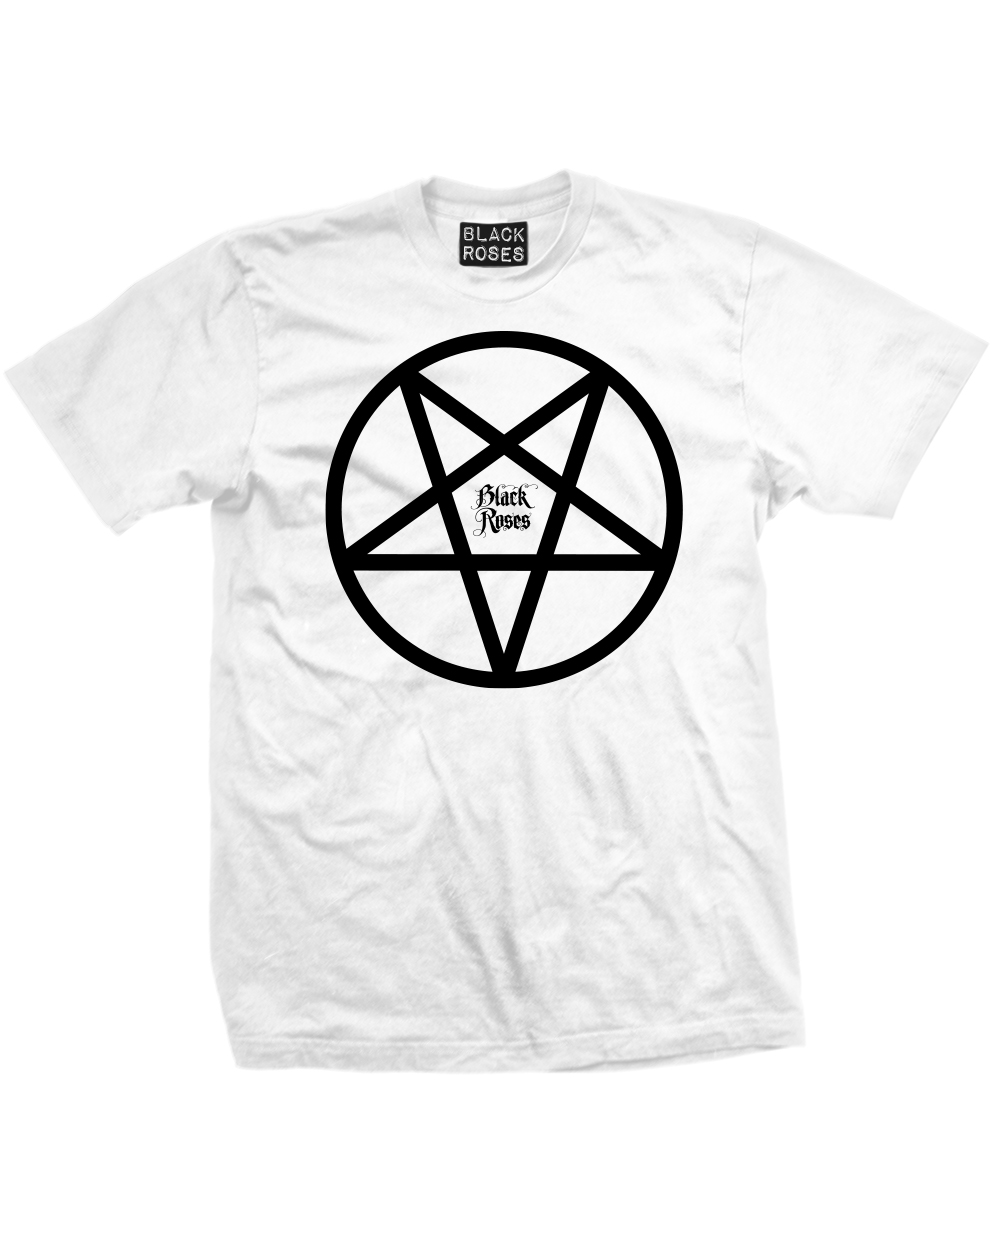 Back in black t shirt - Back In Black Pentacle Mens Tee Shirt White